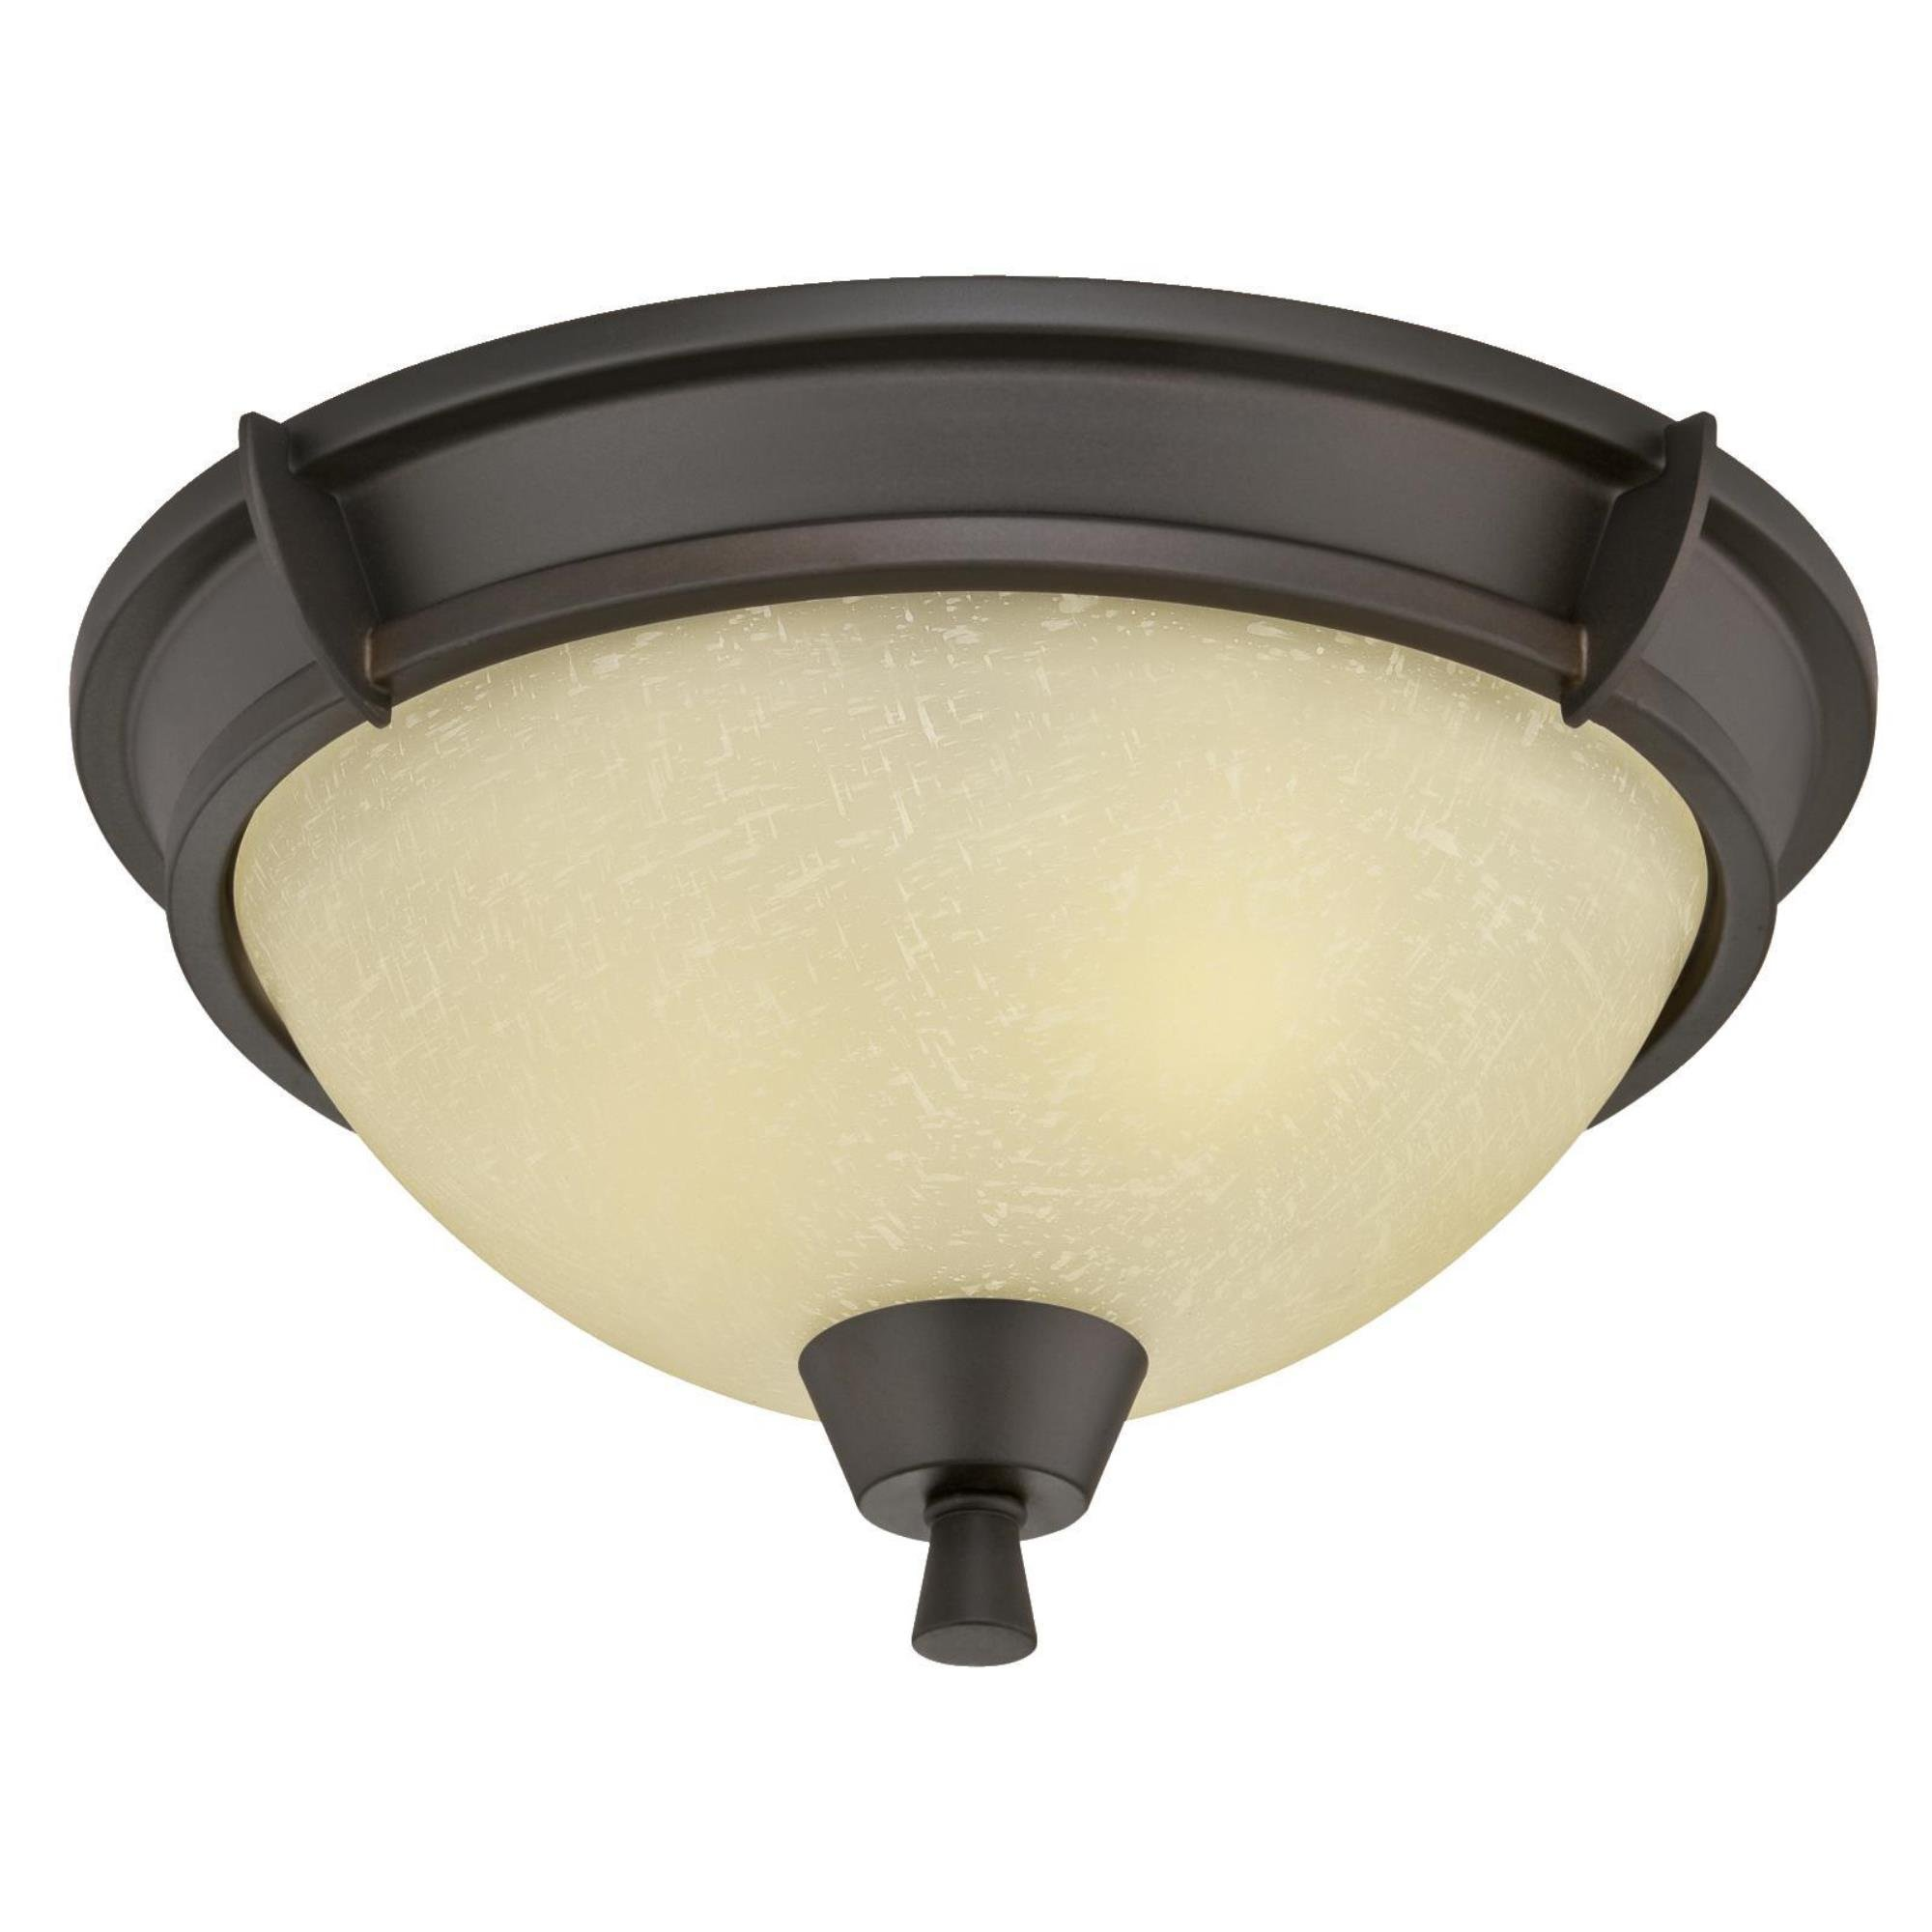 Westinghouse 6303000 Midori Two-Light Indoor Flush Mount, Oil Rubbed Bronze Finish with Amber Linen Glass